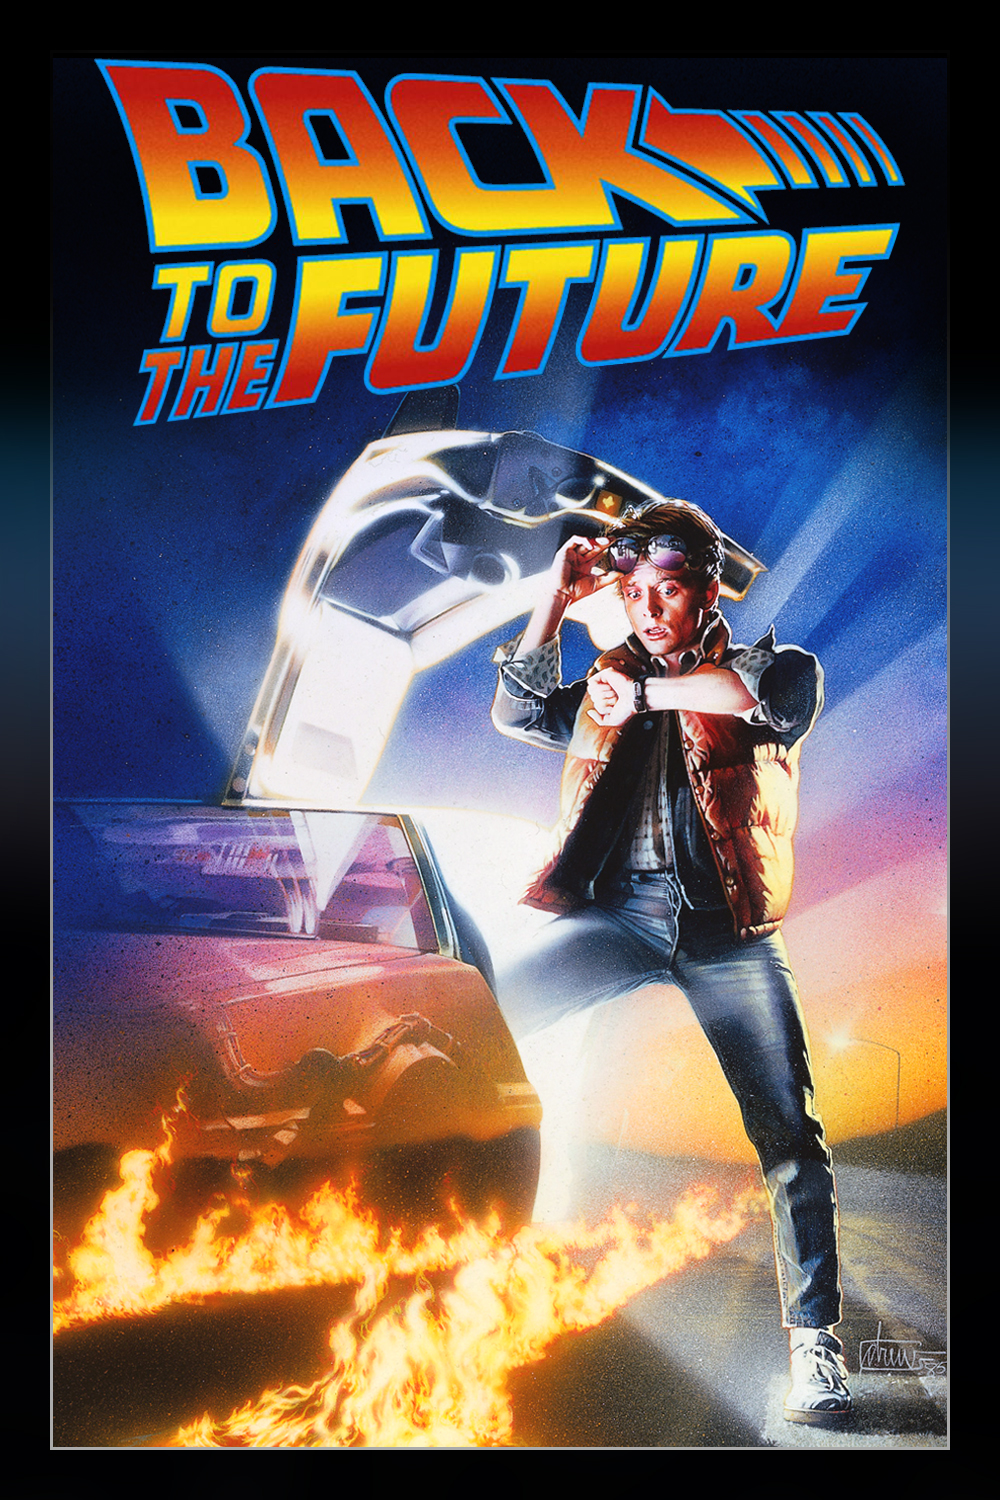 Back-To-The-Future-predictions-right